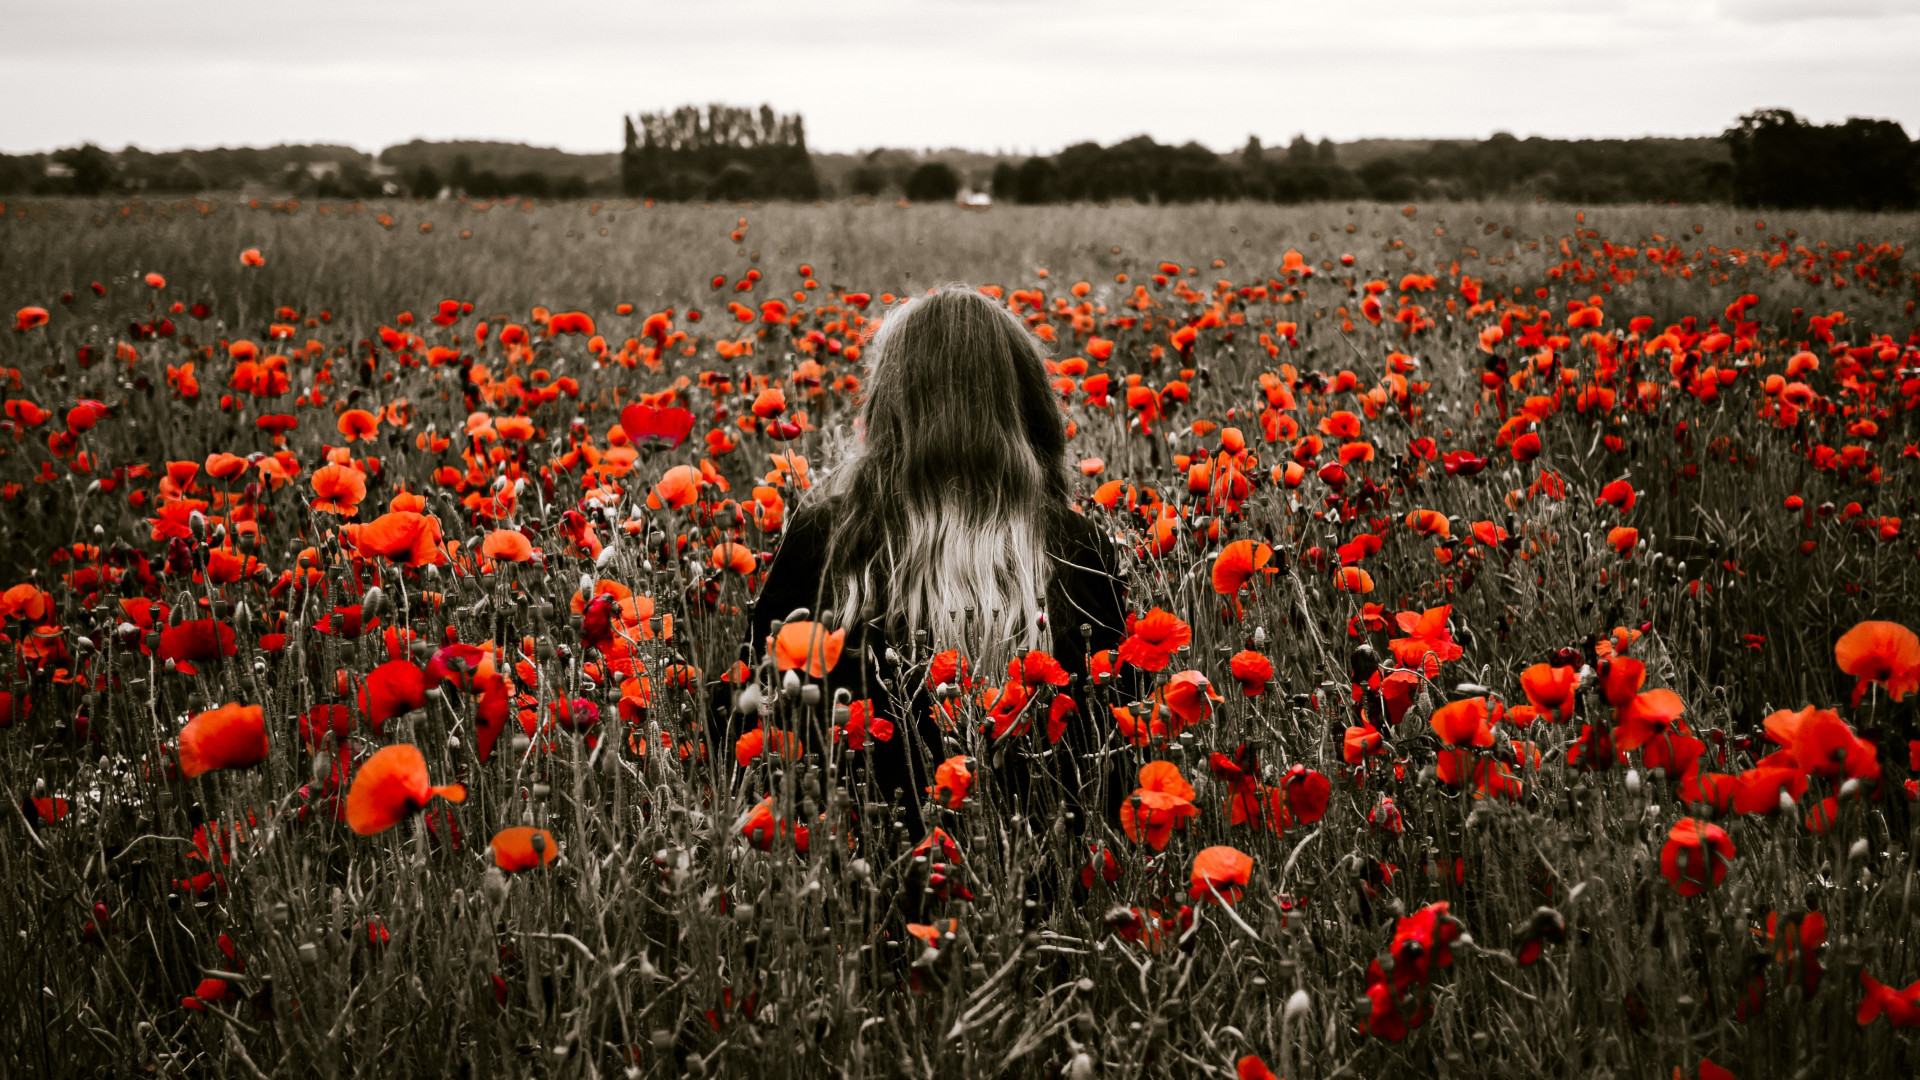 Girl in the field with red poppies wallpaper 1920x1080